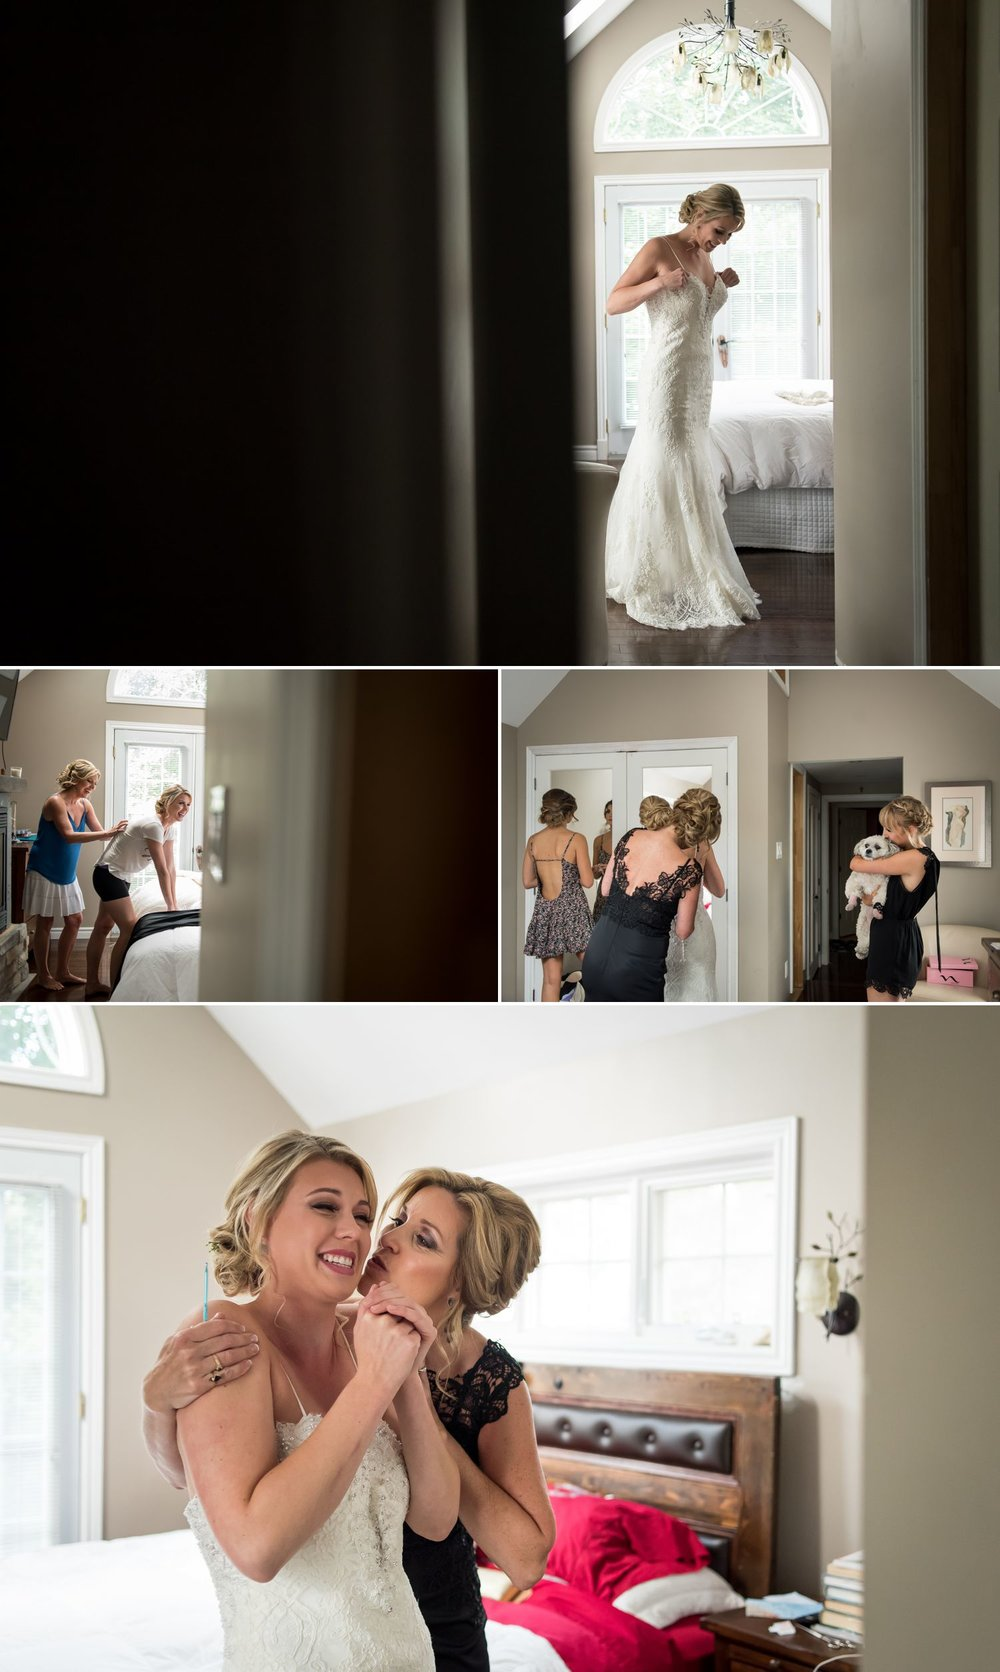 The bride with her family and bridesmaids getting ready at their home in Ottawa, ON.